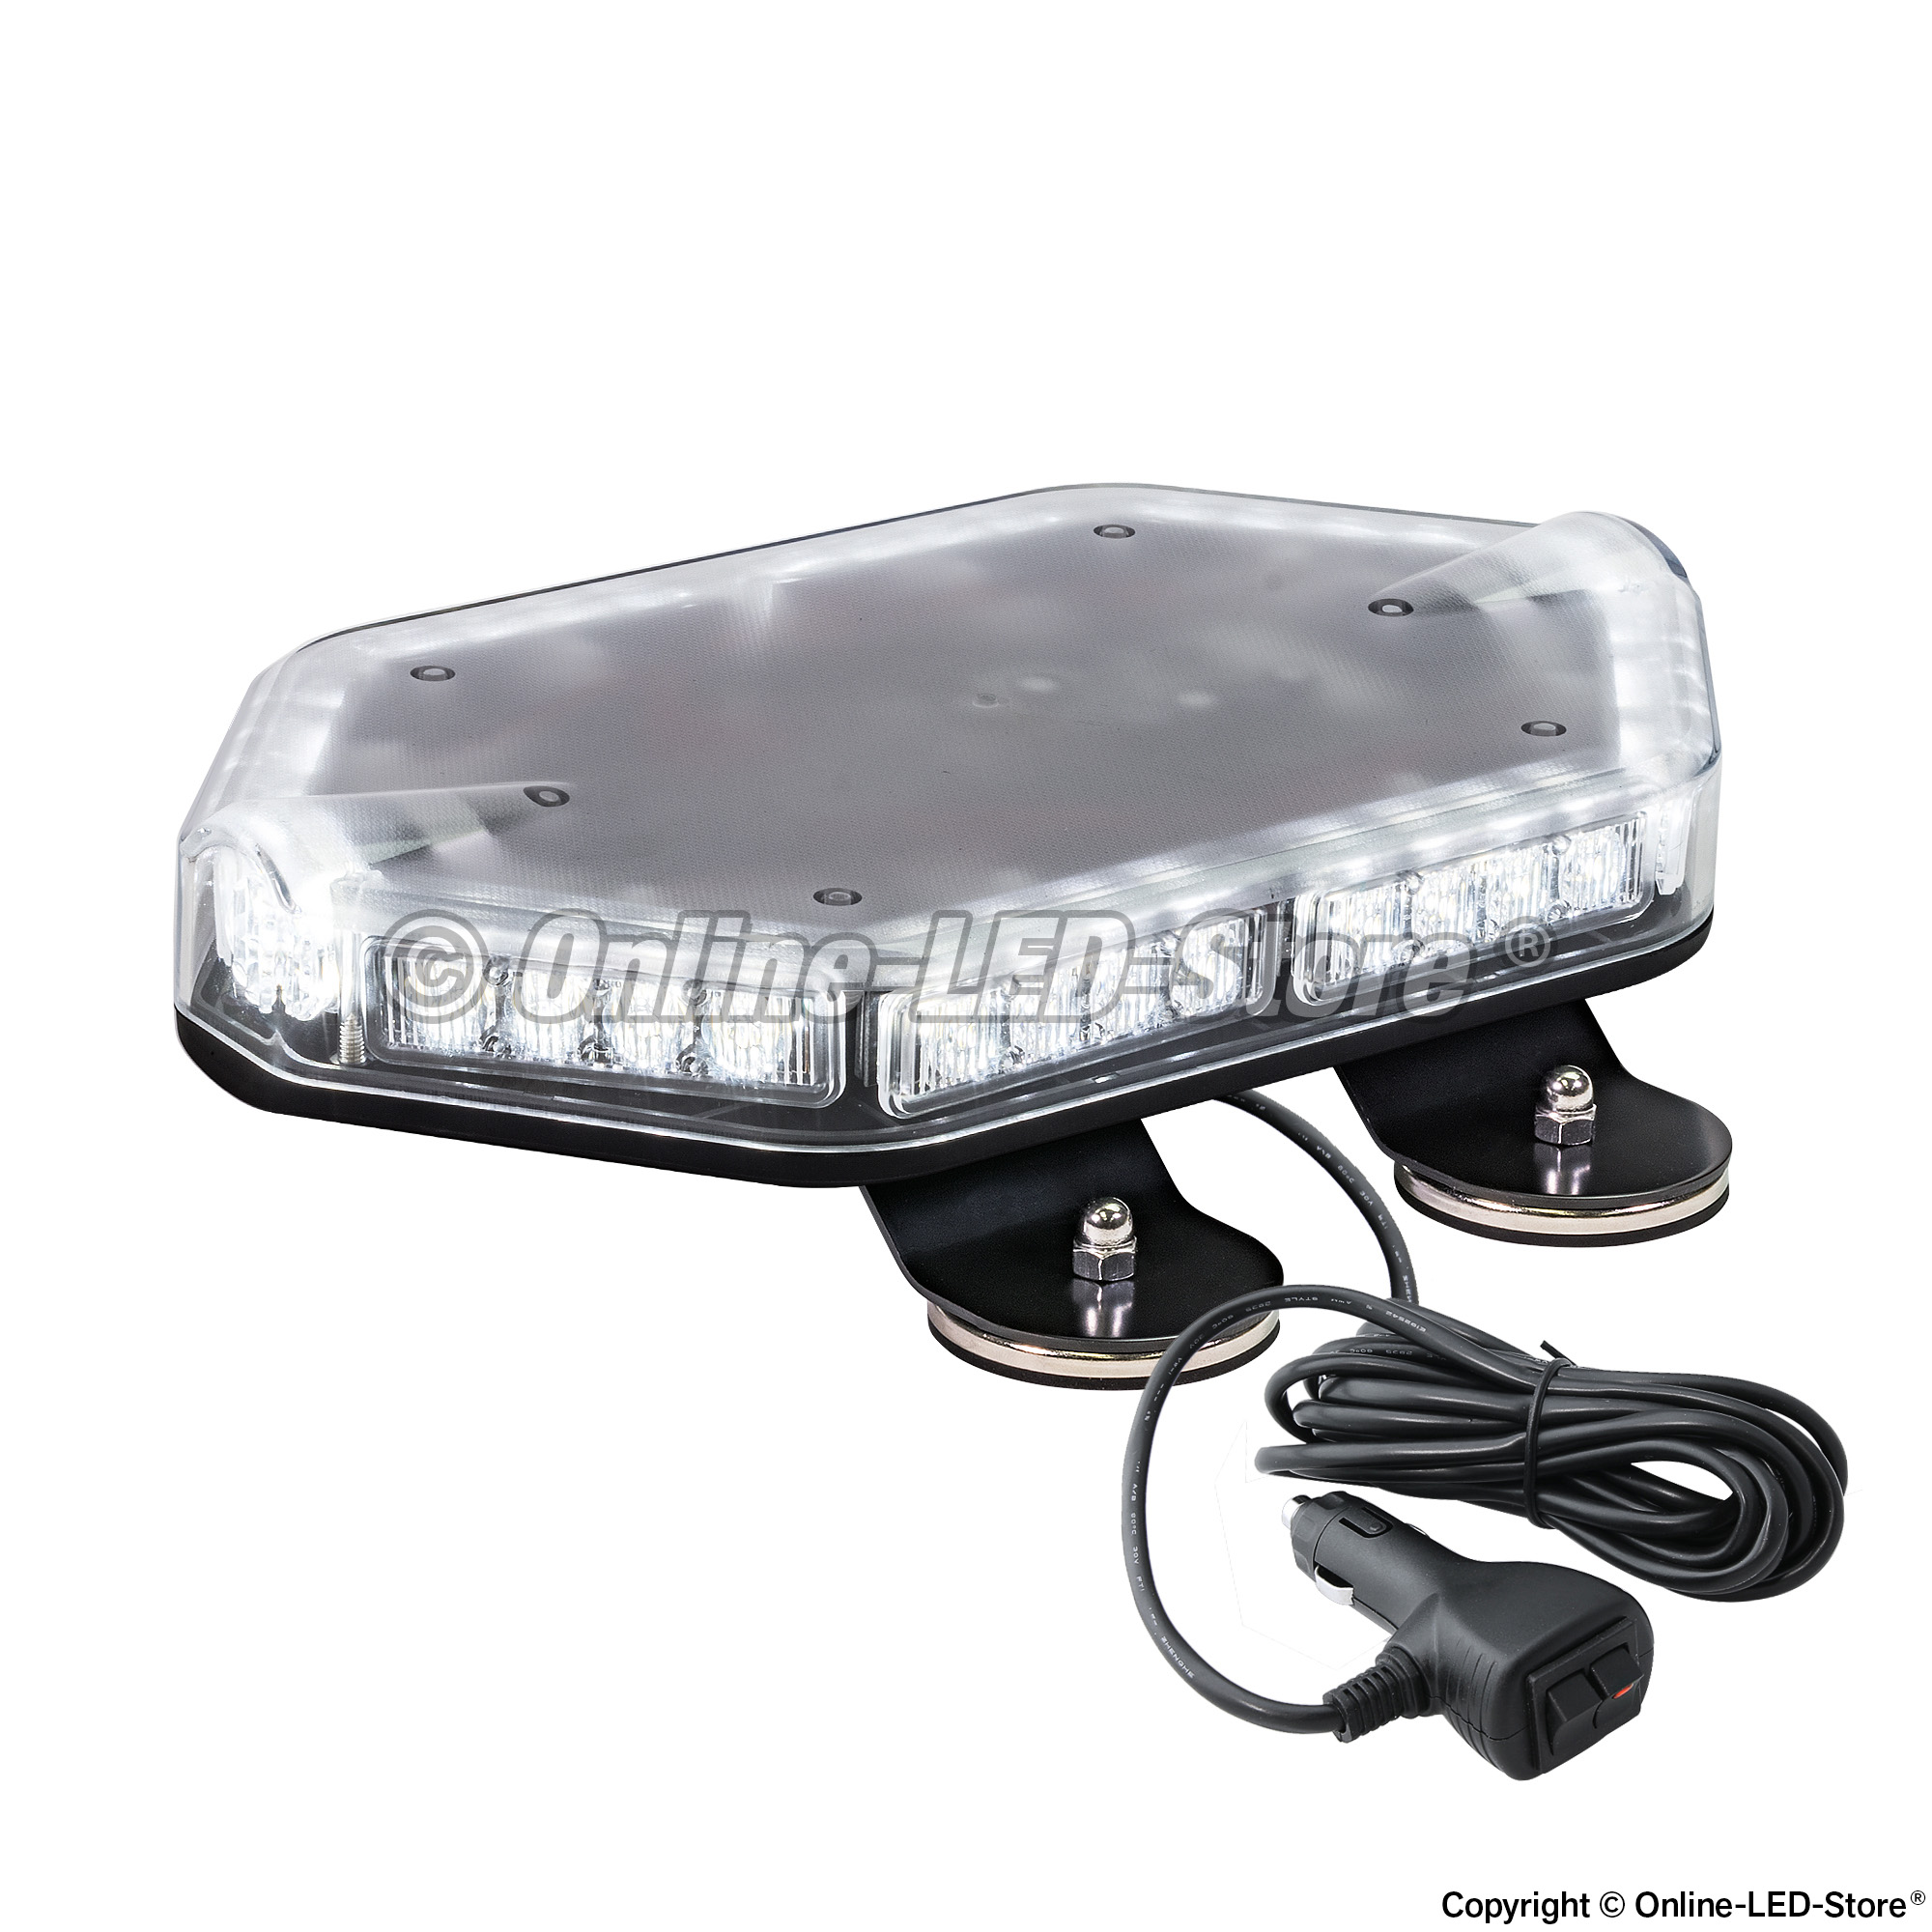 40W Mini LED Light Bar